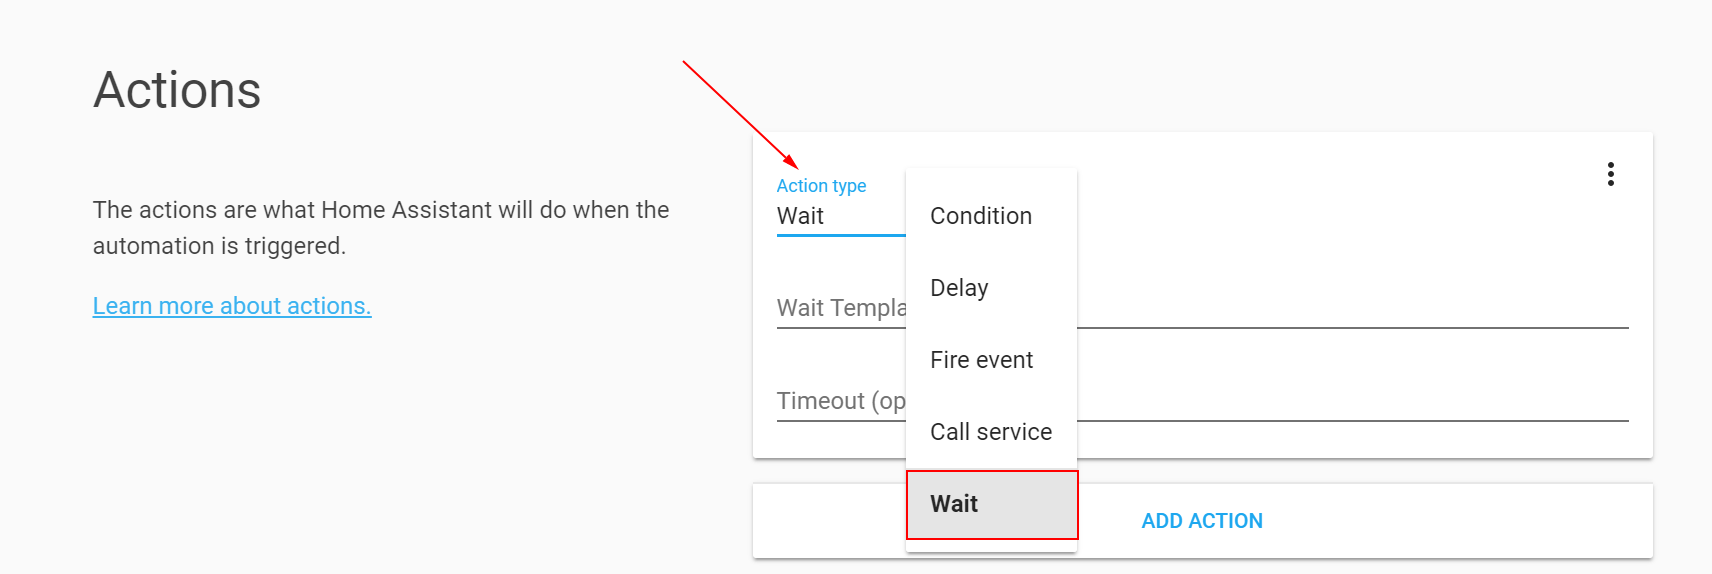 Adding A Wait Action From The Automation Ui Comes Up With